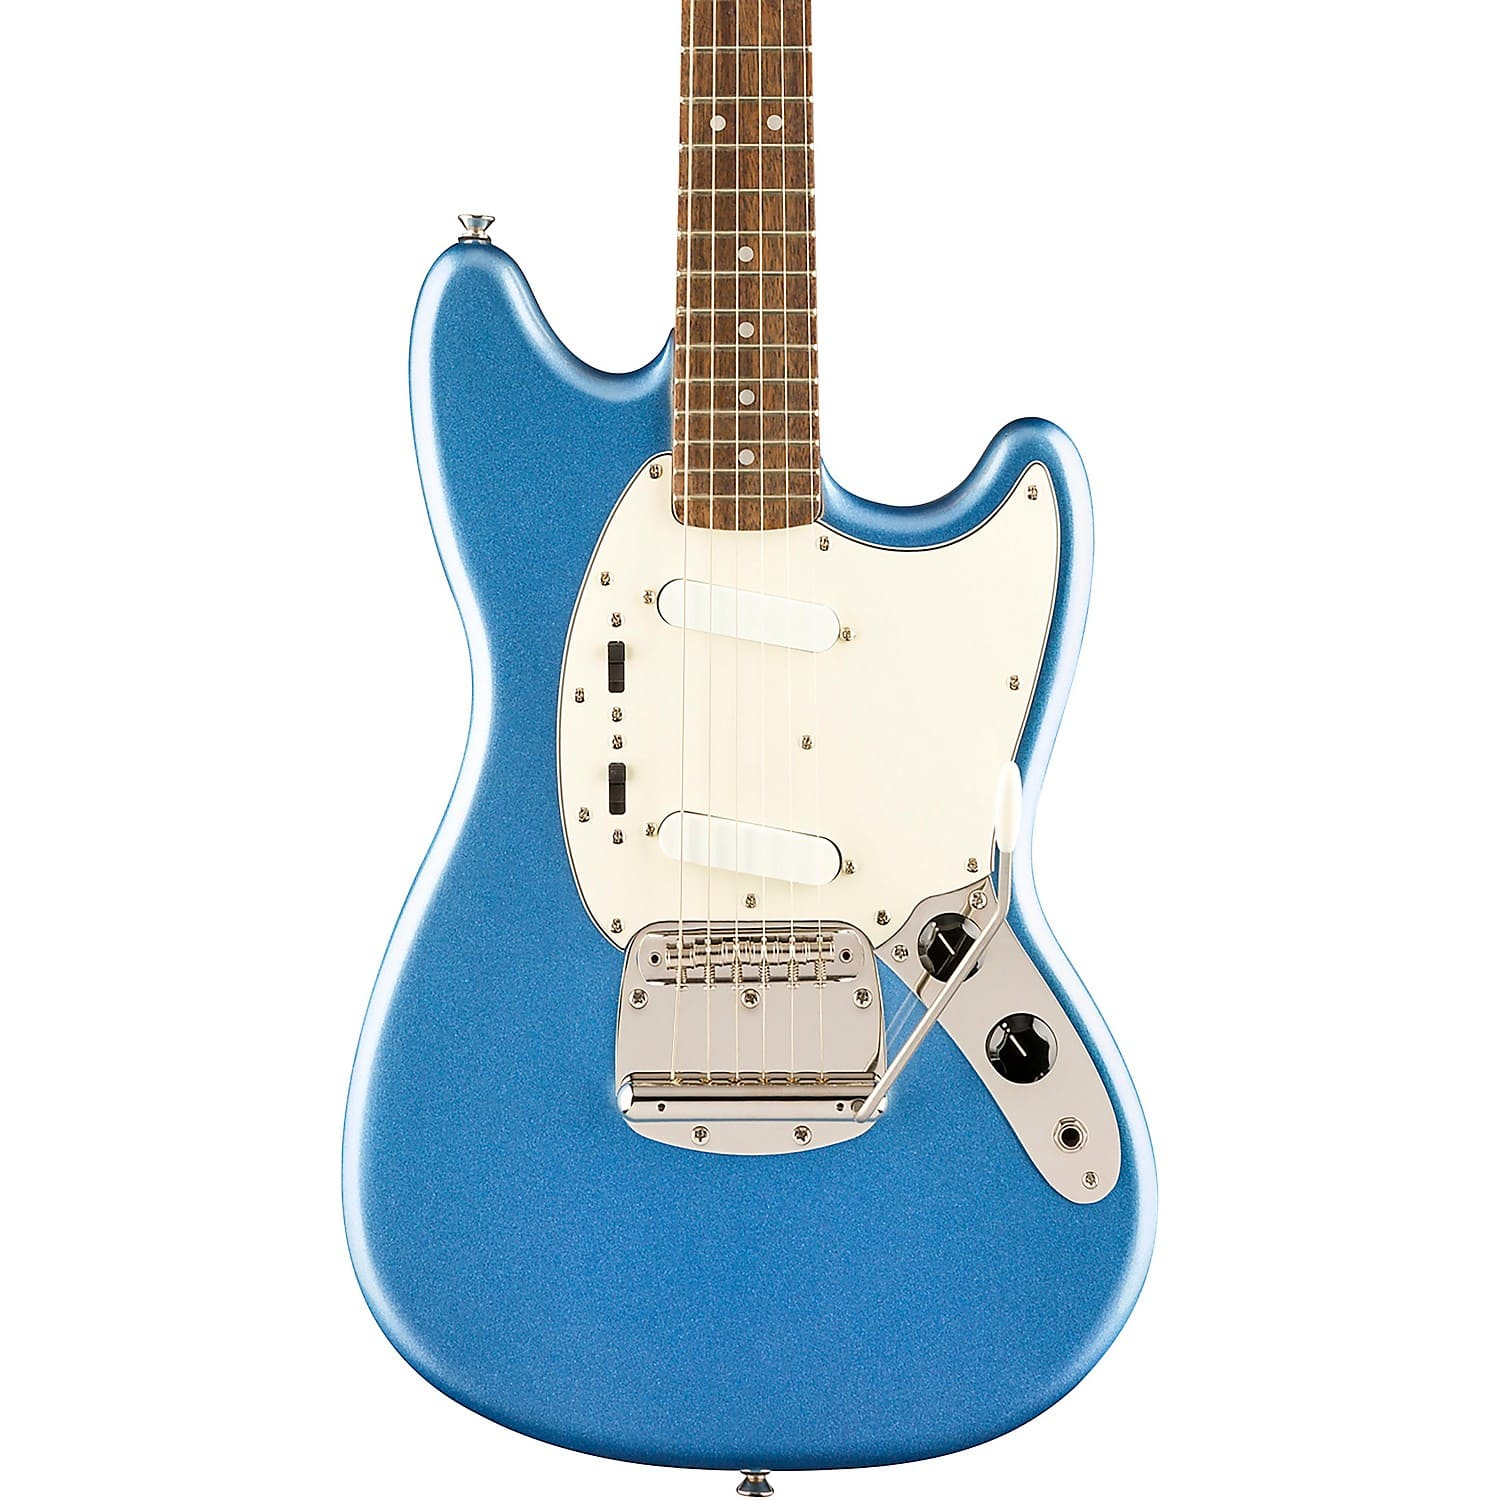 Squier Classic Vibe 60s Mustang Limited Edition Guitar $319.99 at Musician's Friend